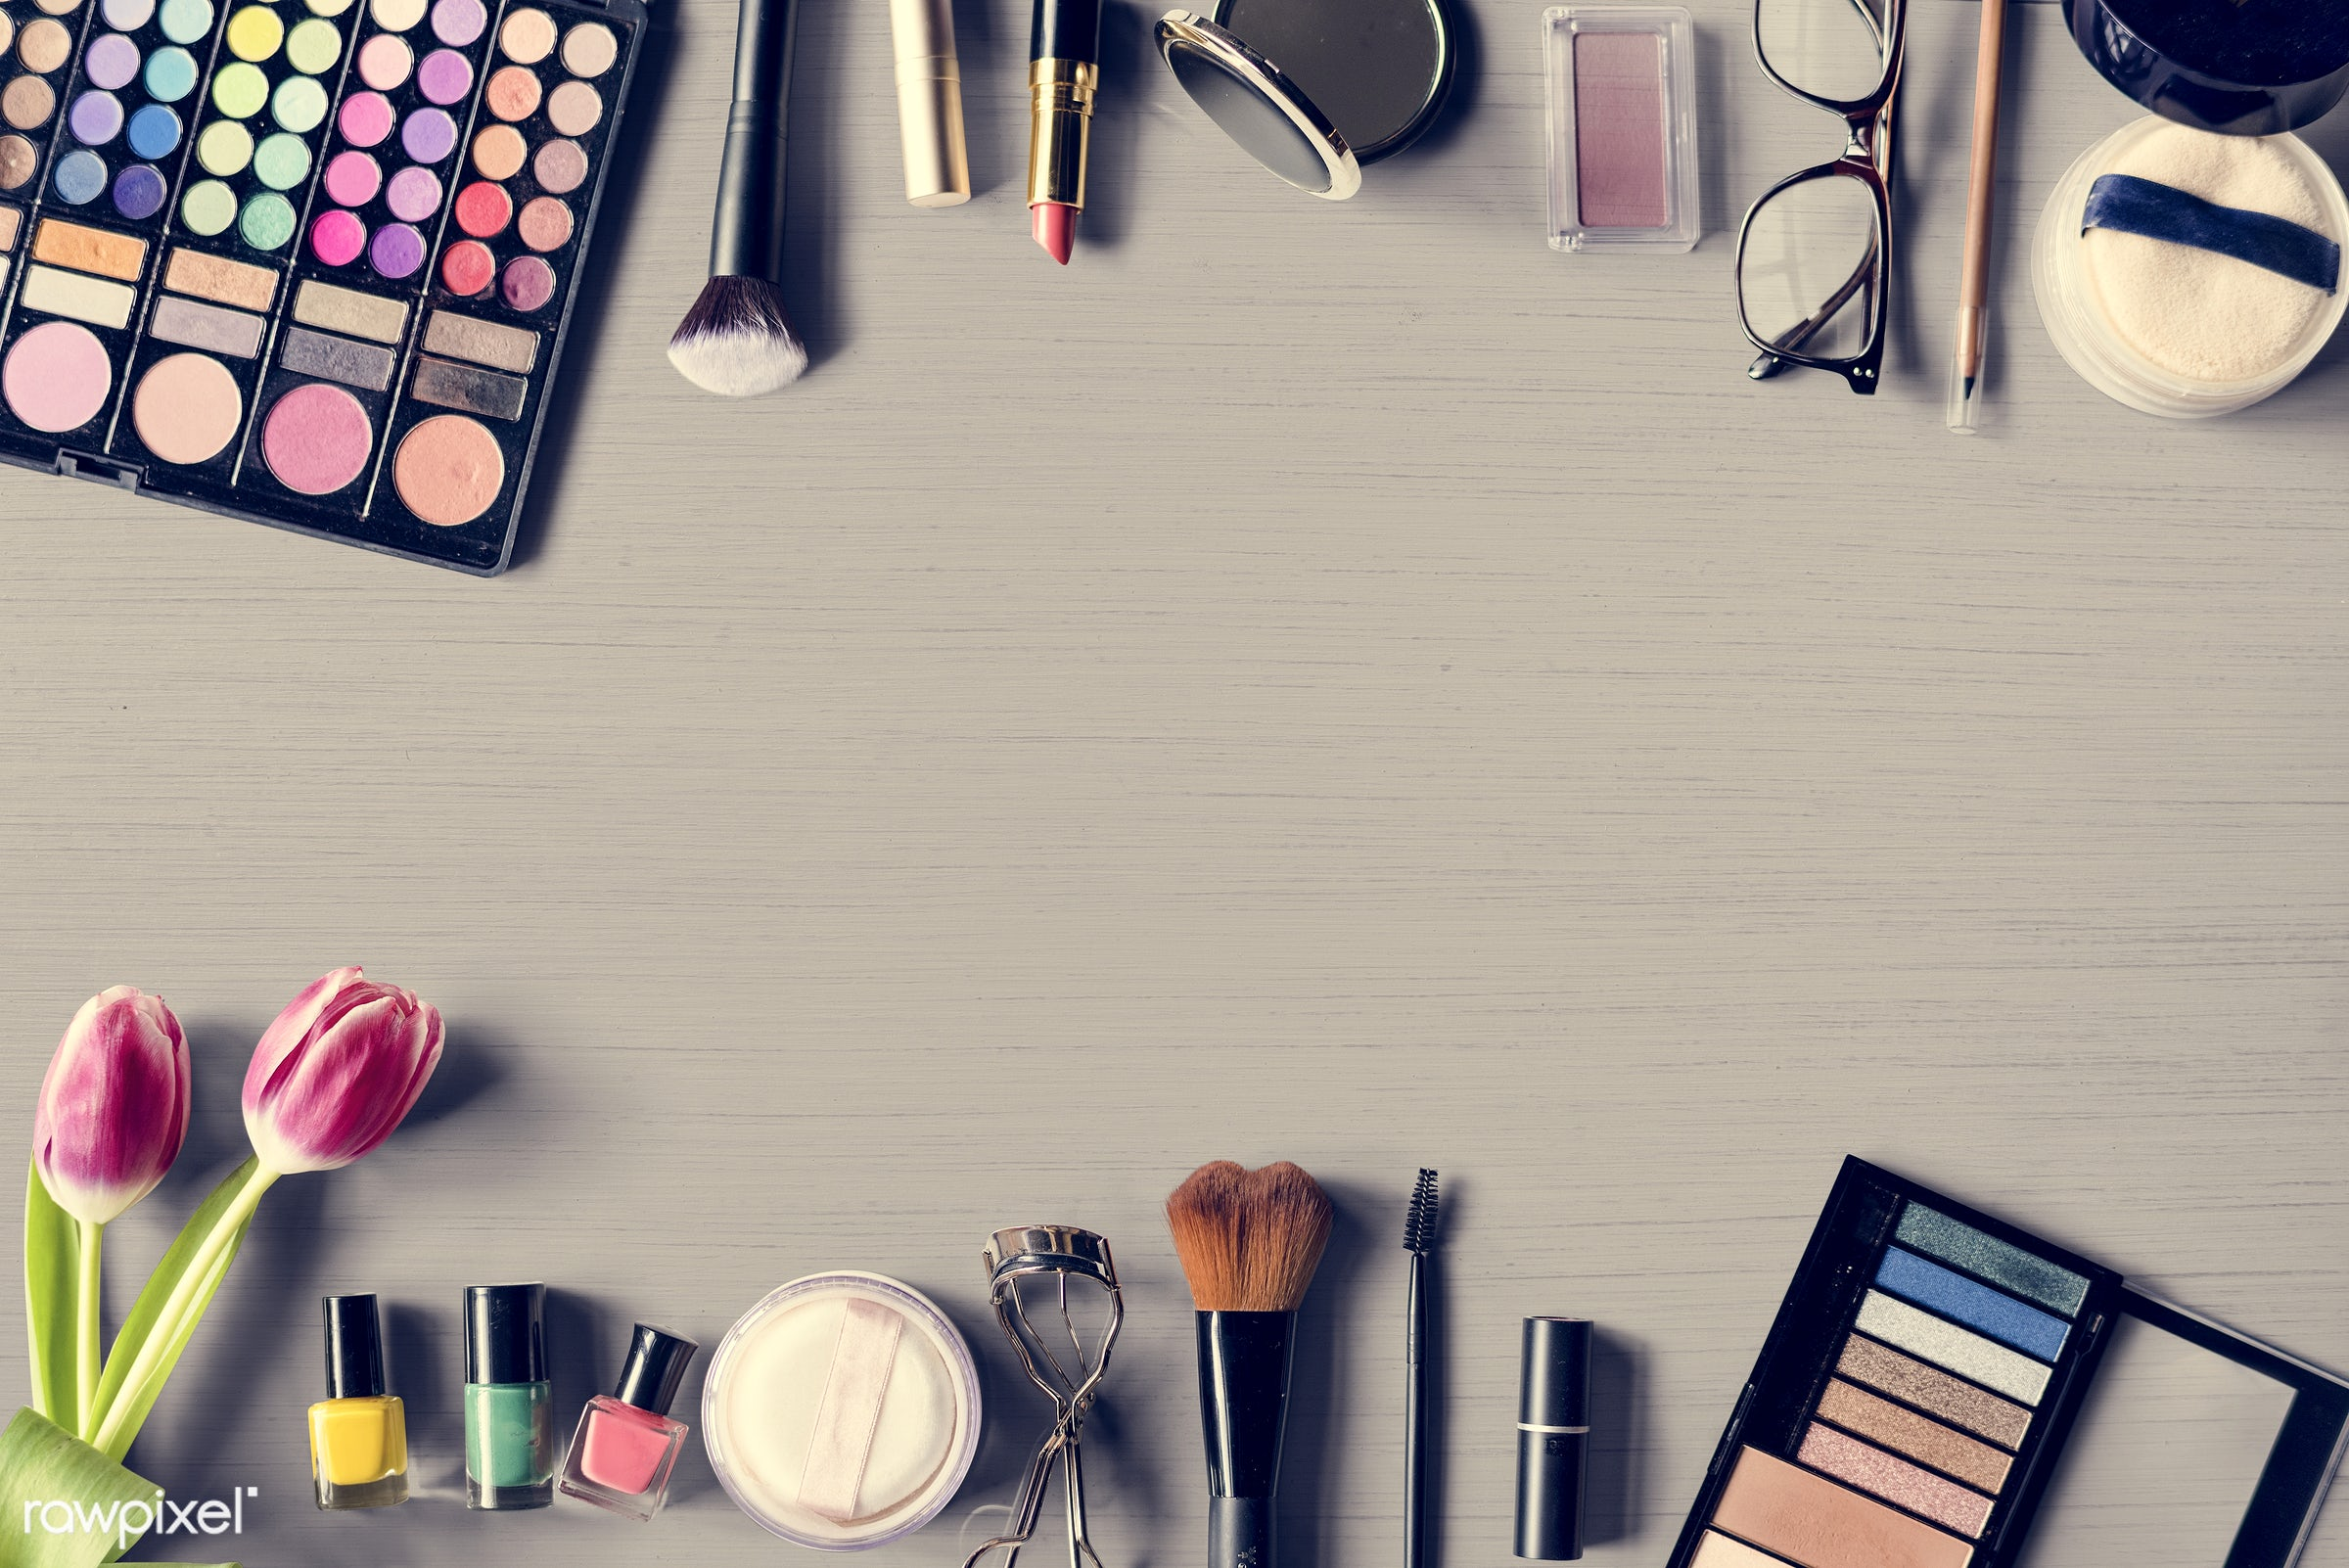 face, apply, nobody, fashion, nail polish, decorative, makeup, treatment, palette, powder, tulips, beauty, collection,...